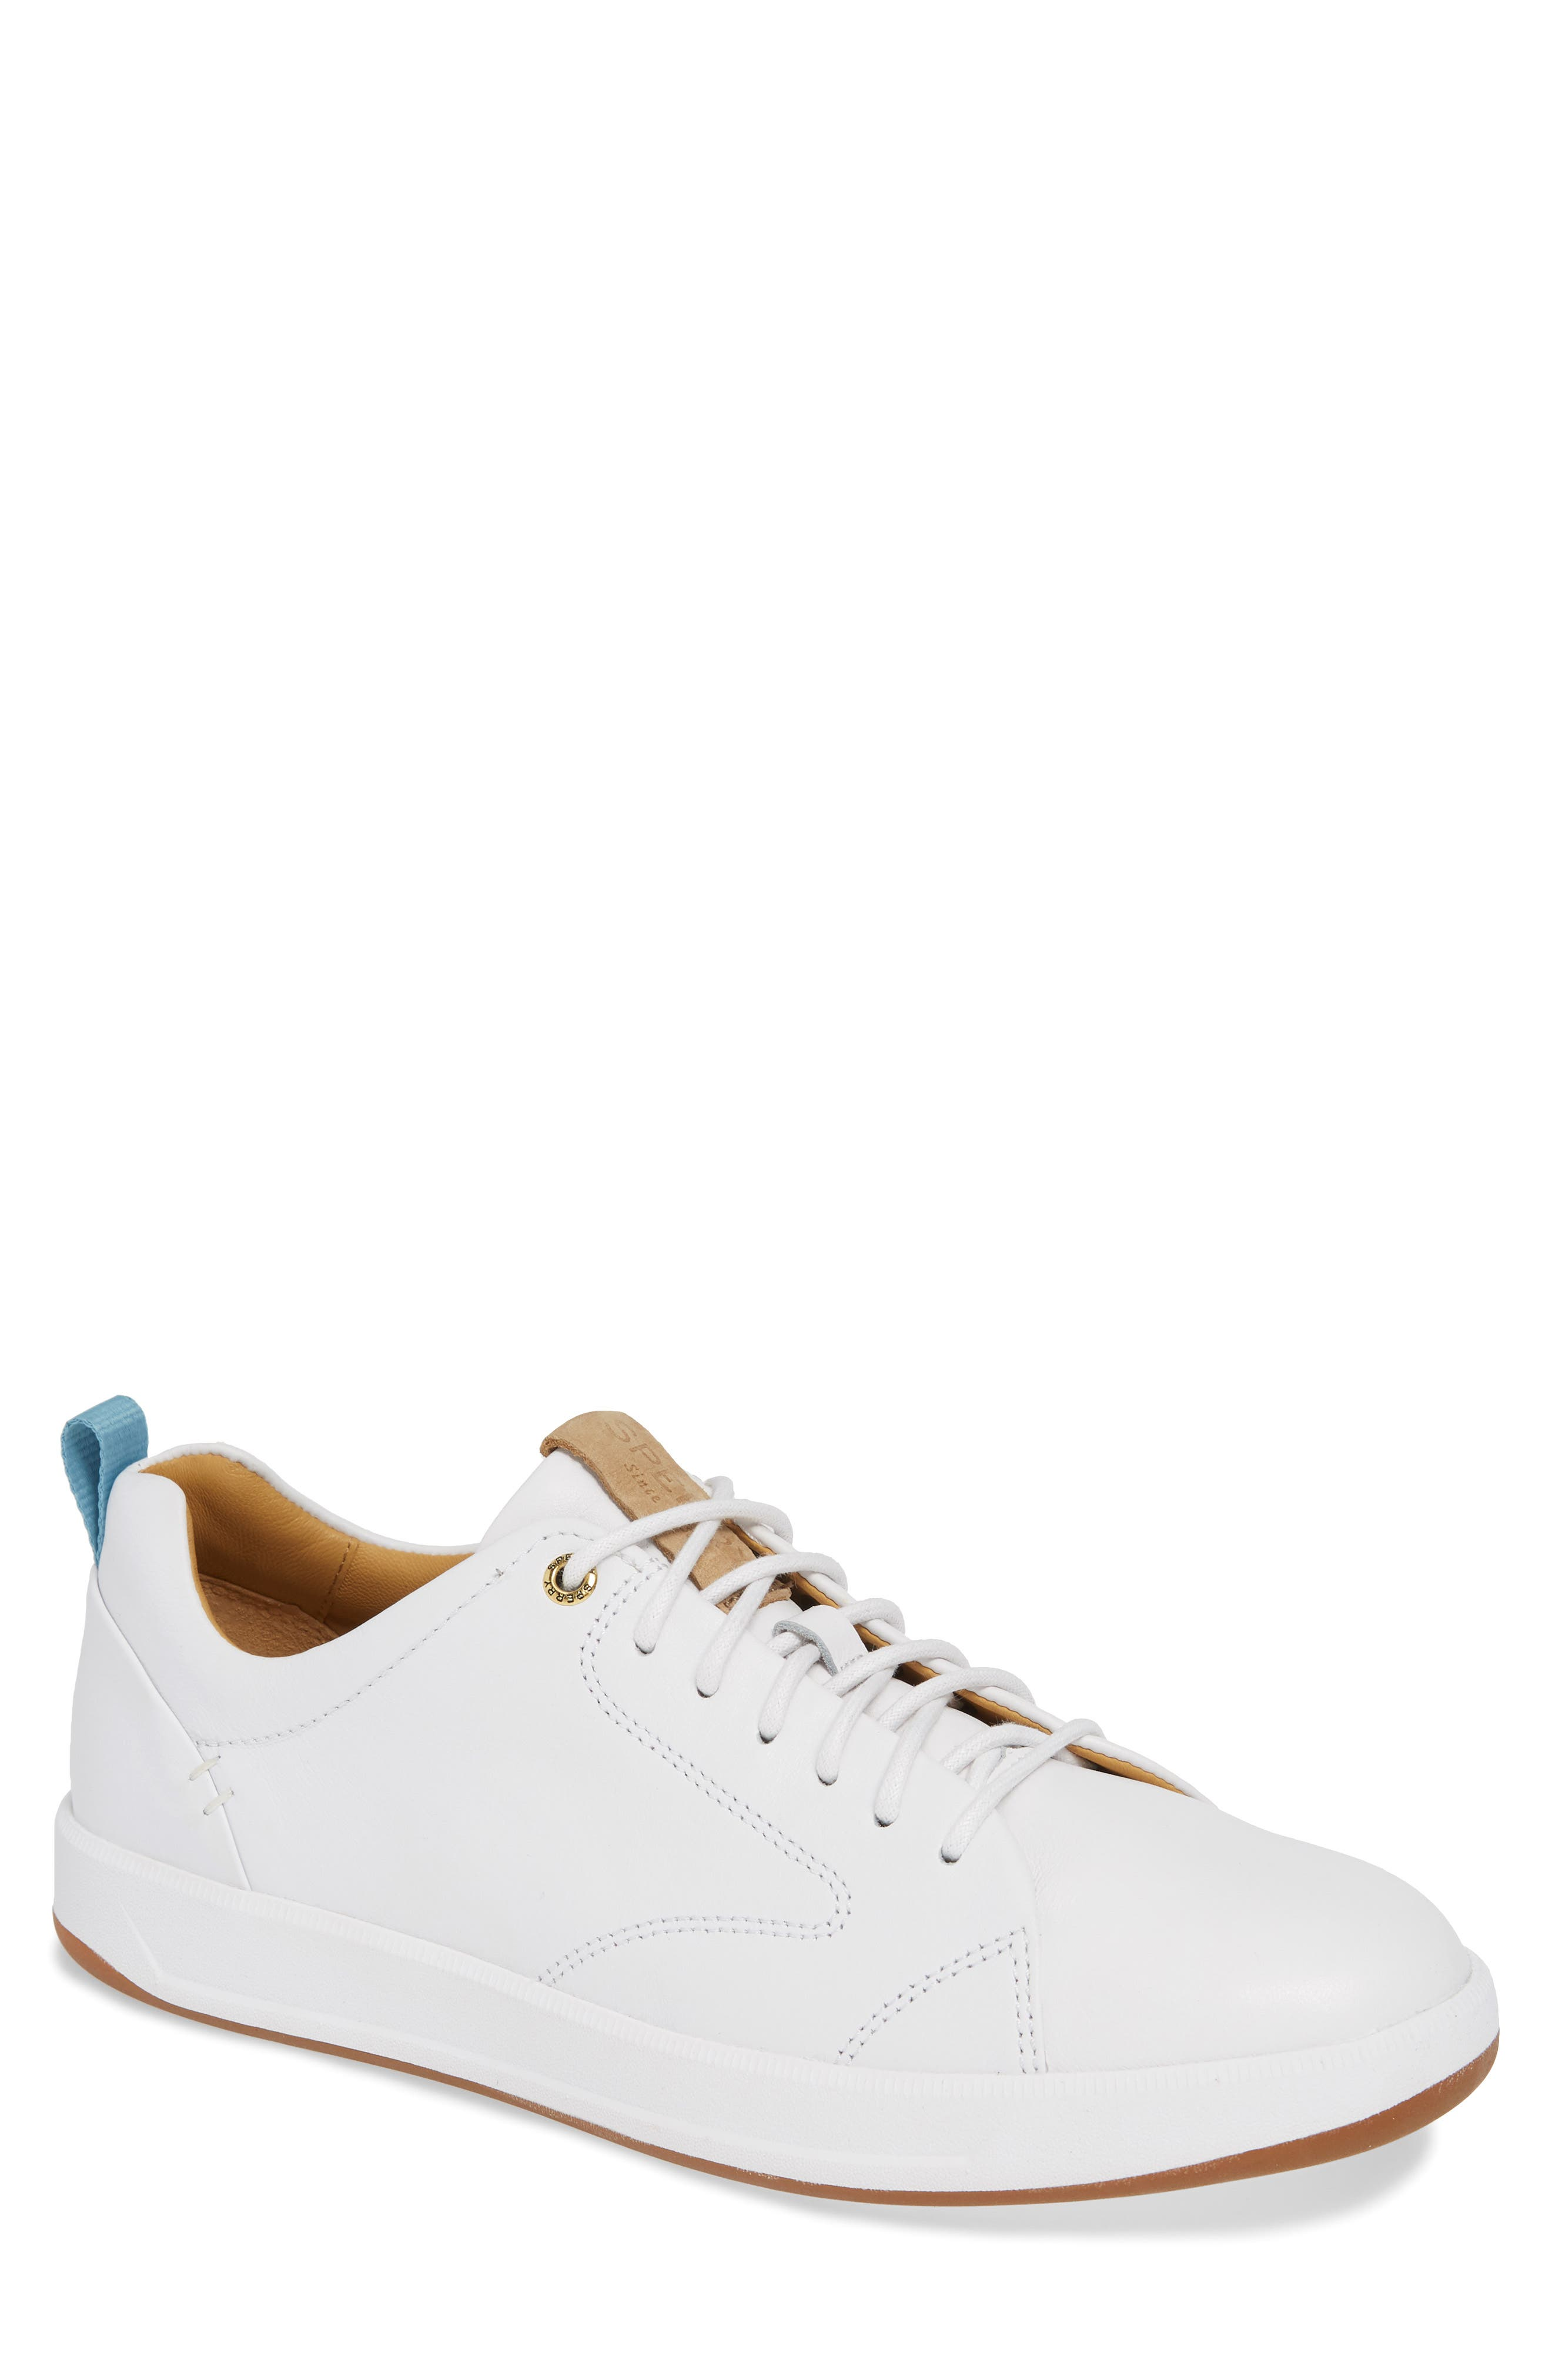 SPERRY, Gold Cup Richfield LTT Sneaker, Main thumbnail 1, color, WHITE